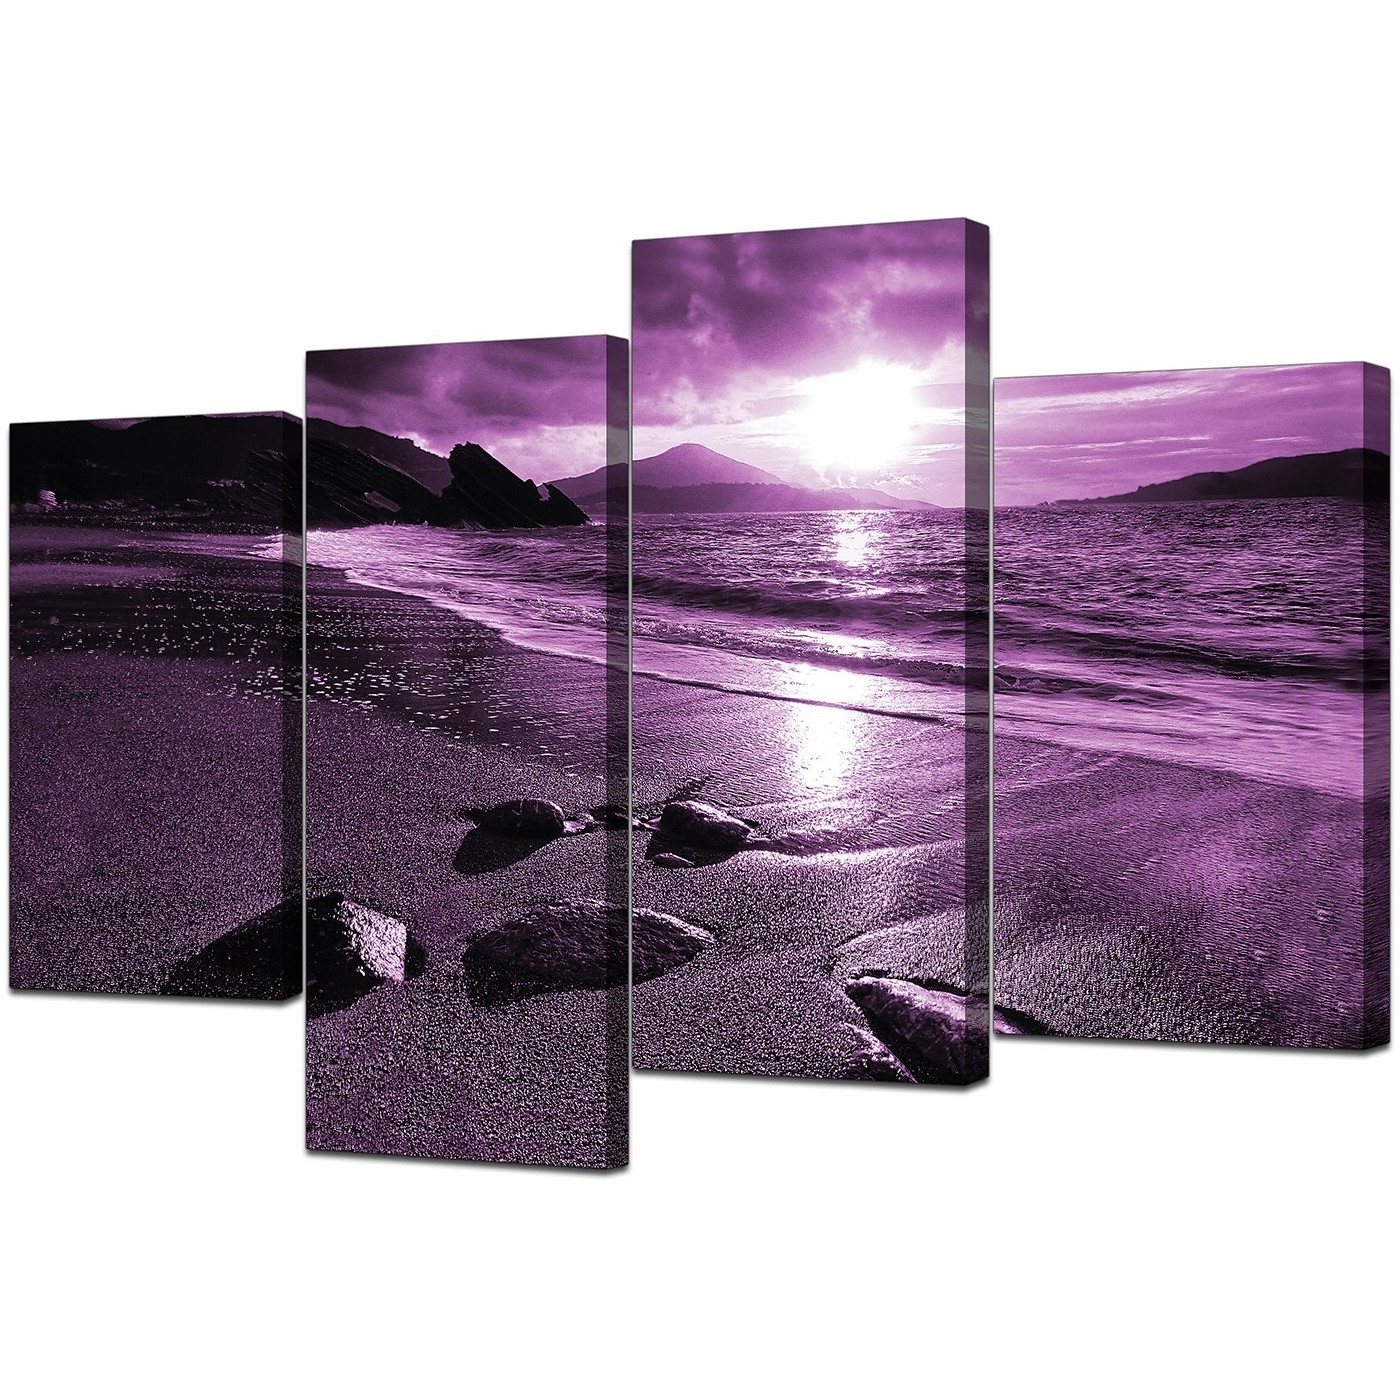 4 Piece Wall Art With Regard To Most Recently Released Canvas Prints Of Sunset In Purple For Your Living Room (Gallery 14 of 15)